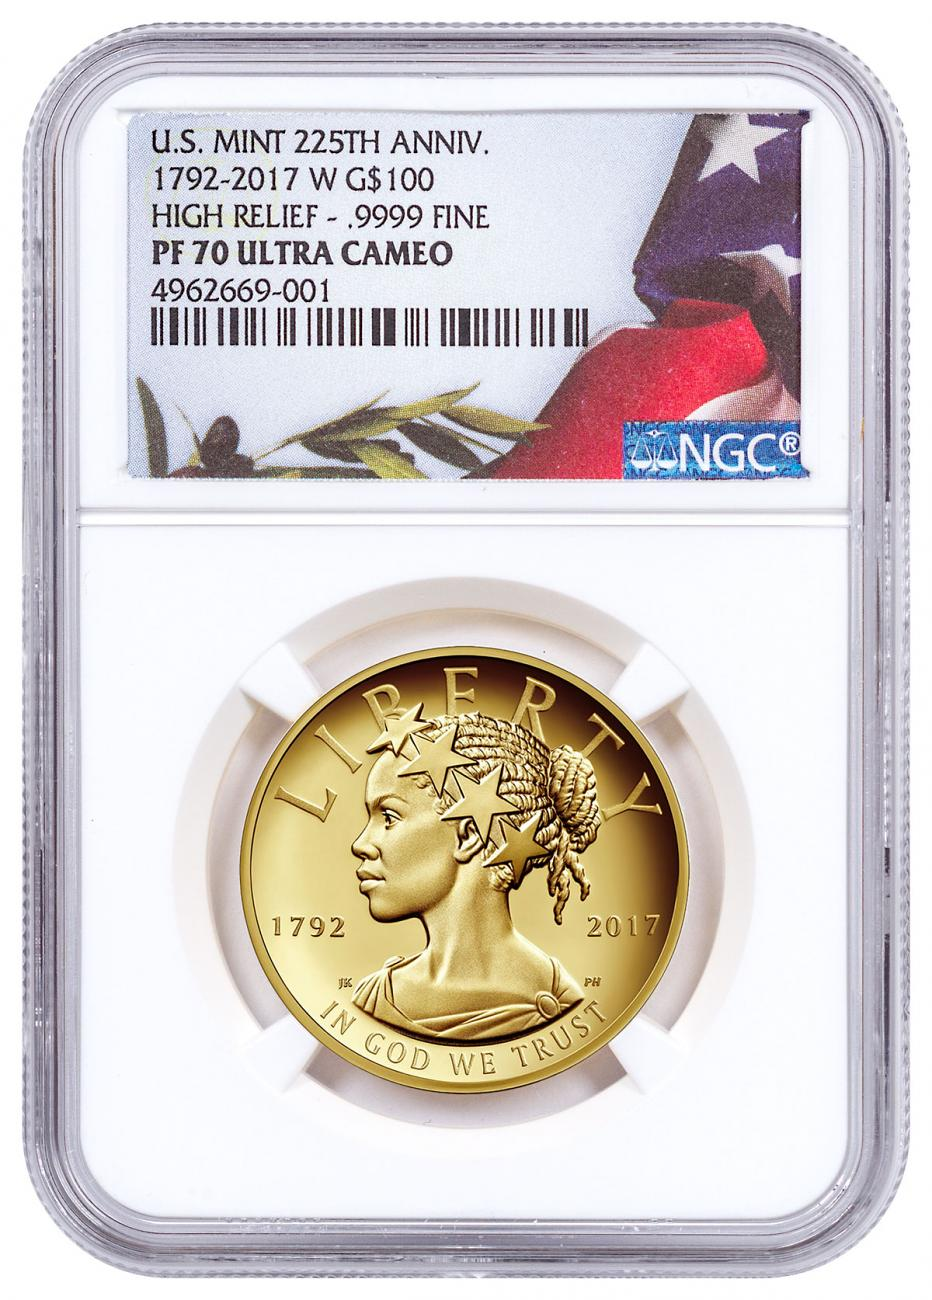 2017-W American Liberty High Relief Gold Proof $100 Coin NGC PF70 UC American Liberty Label